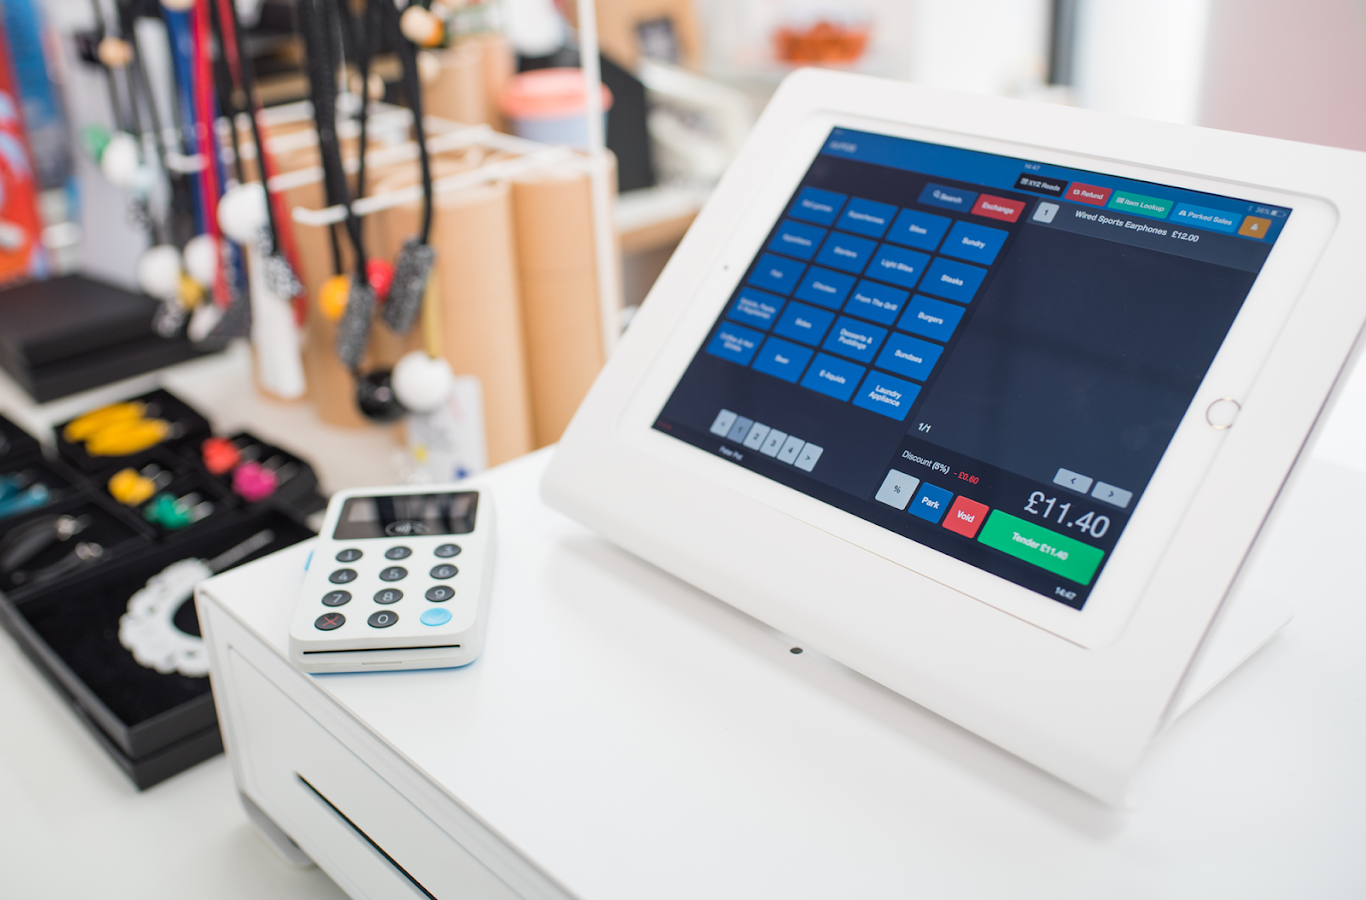 Retail Pos By Air Point Of Sale Epos Android Apps On